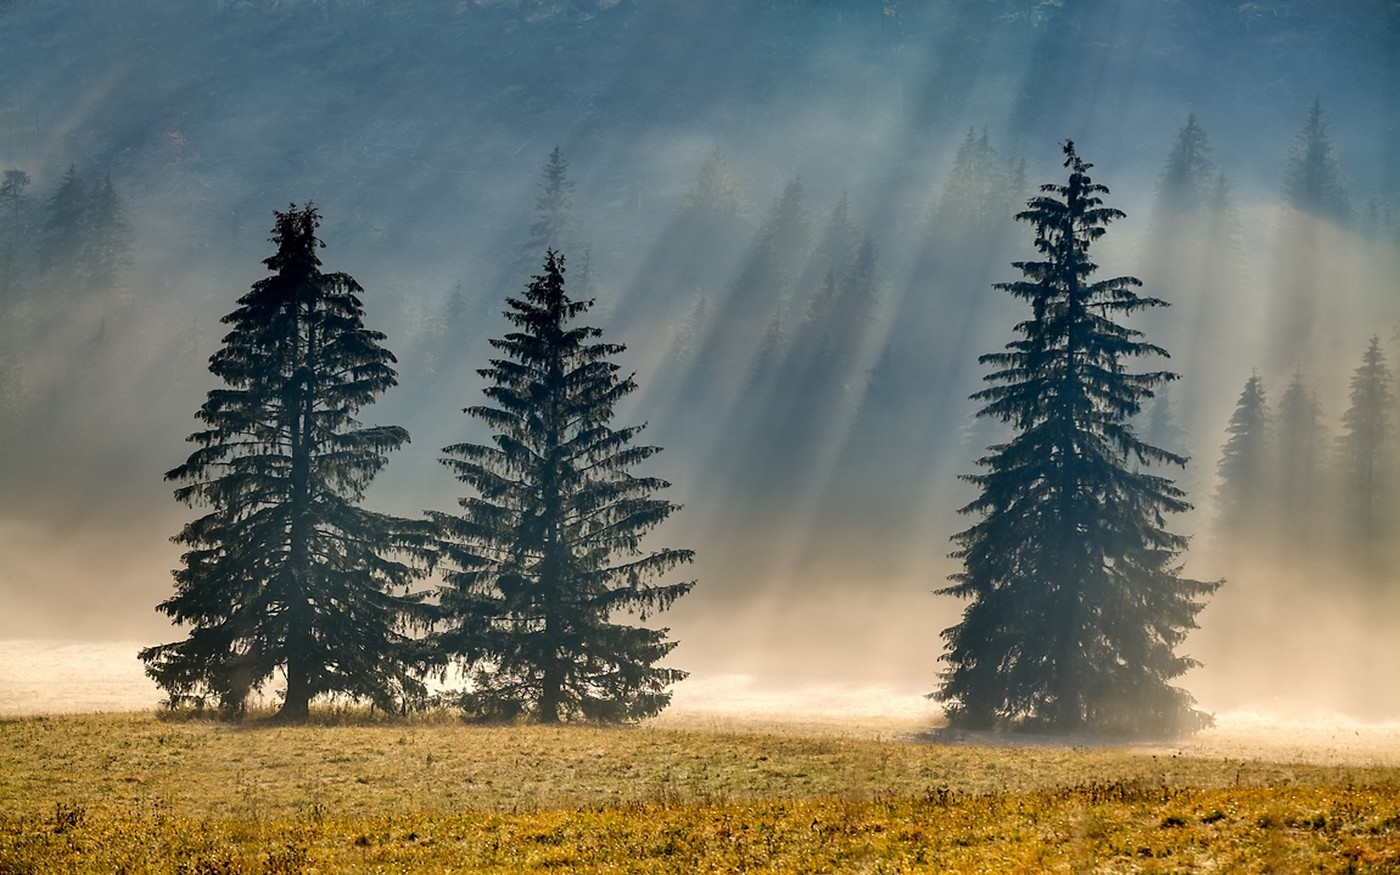 3d Car Wallpaper 1366x768 Photography Nature Landscape Pine Trees Morning